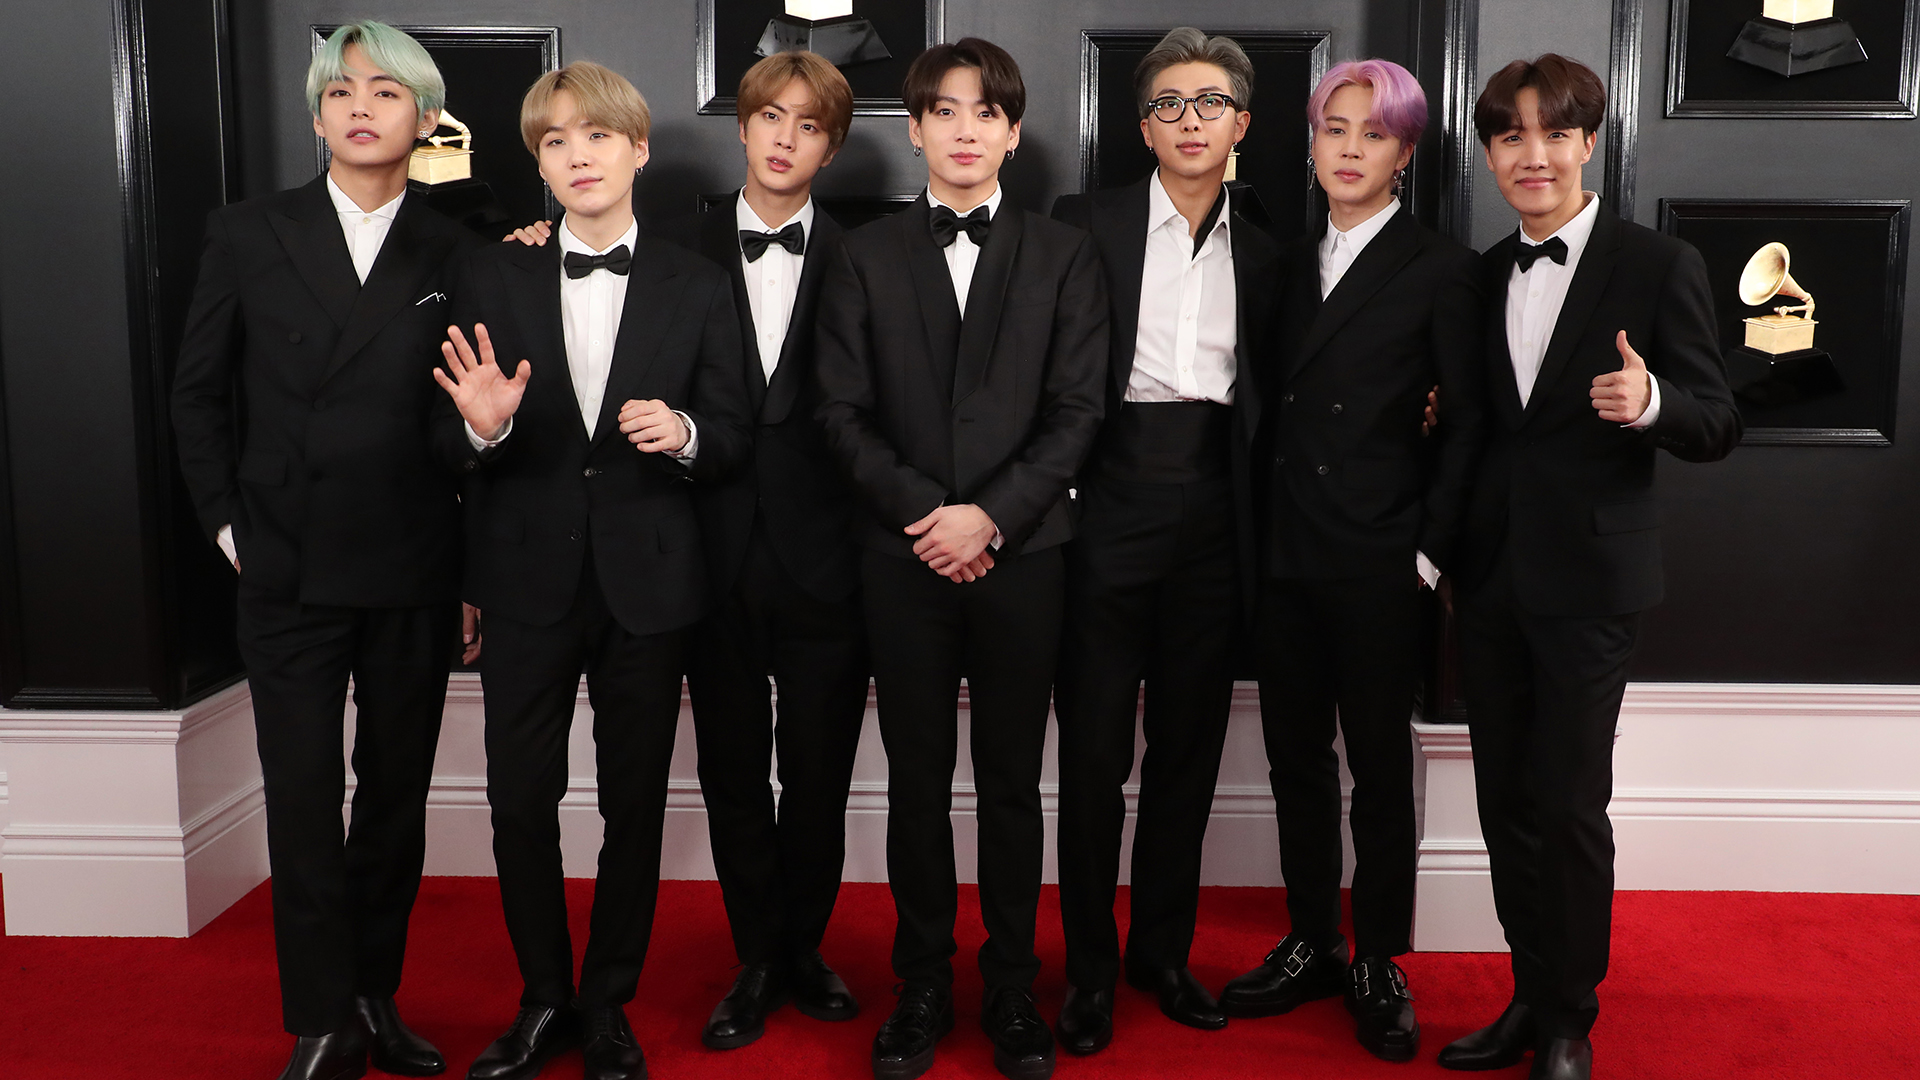 BTS Grammys 2019 Loss Fan Reactions Tweets About BTS Grammys 1920x1080